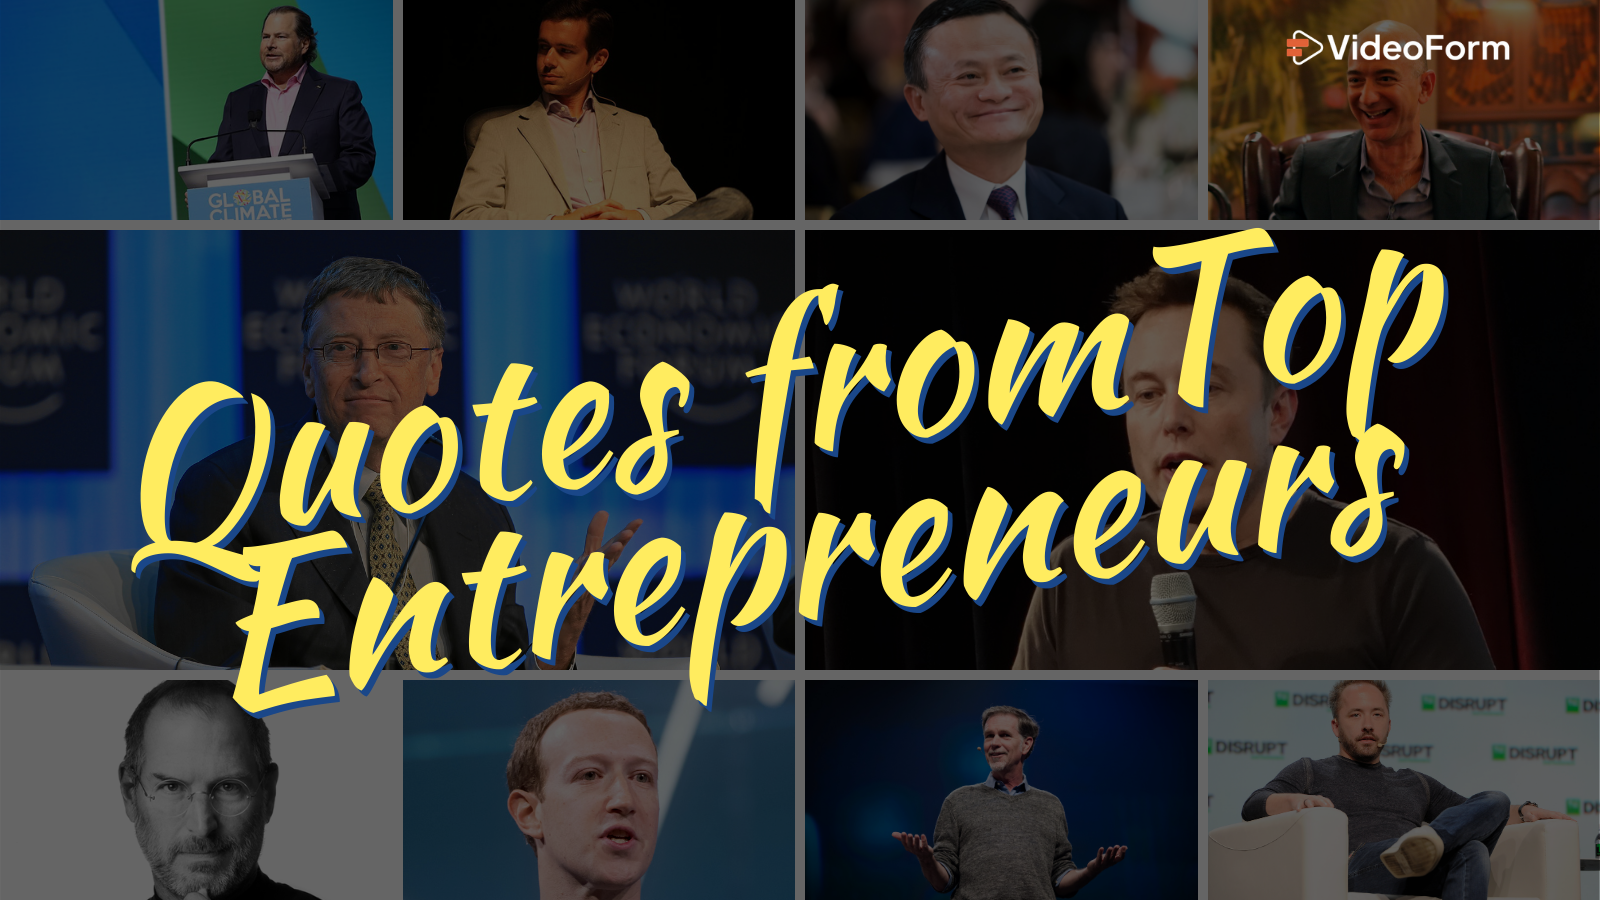 11 Entrepreneur Quotes by Famous Tech Founders to Spark Motivation